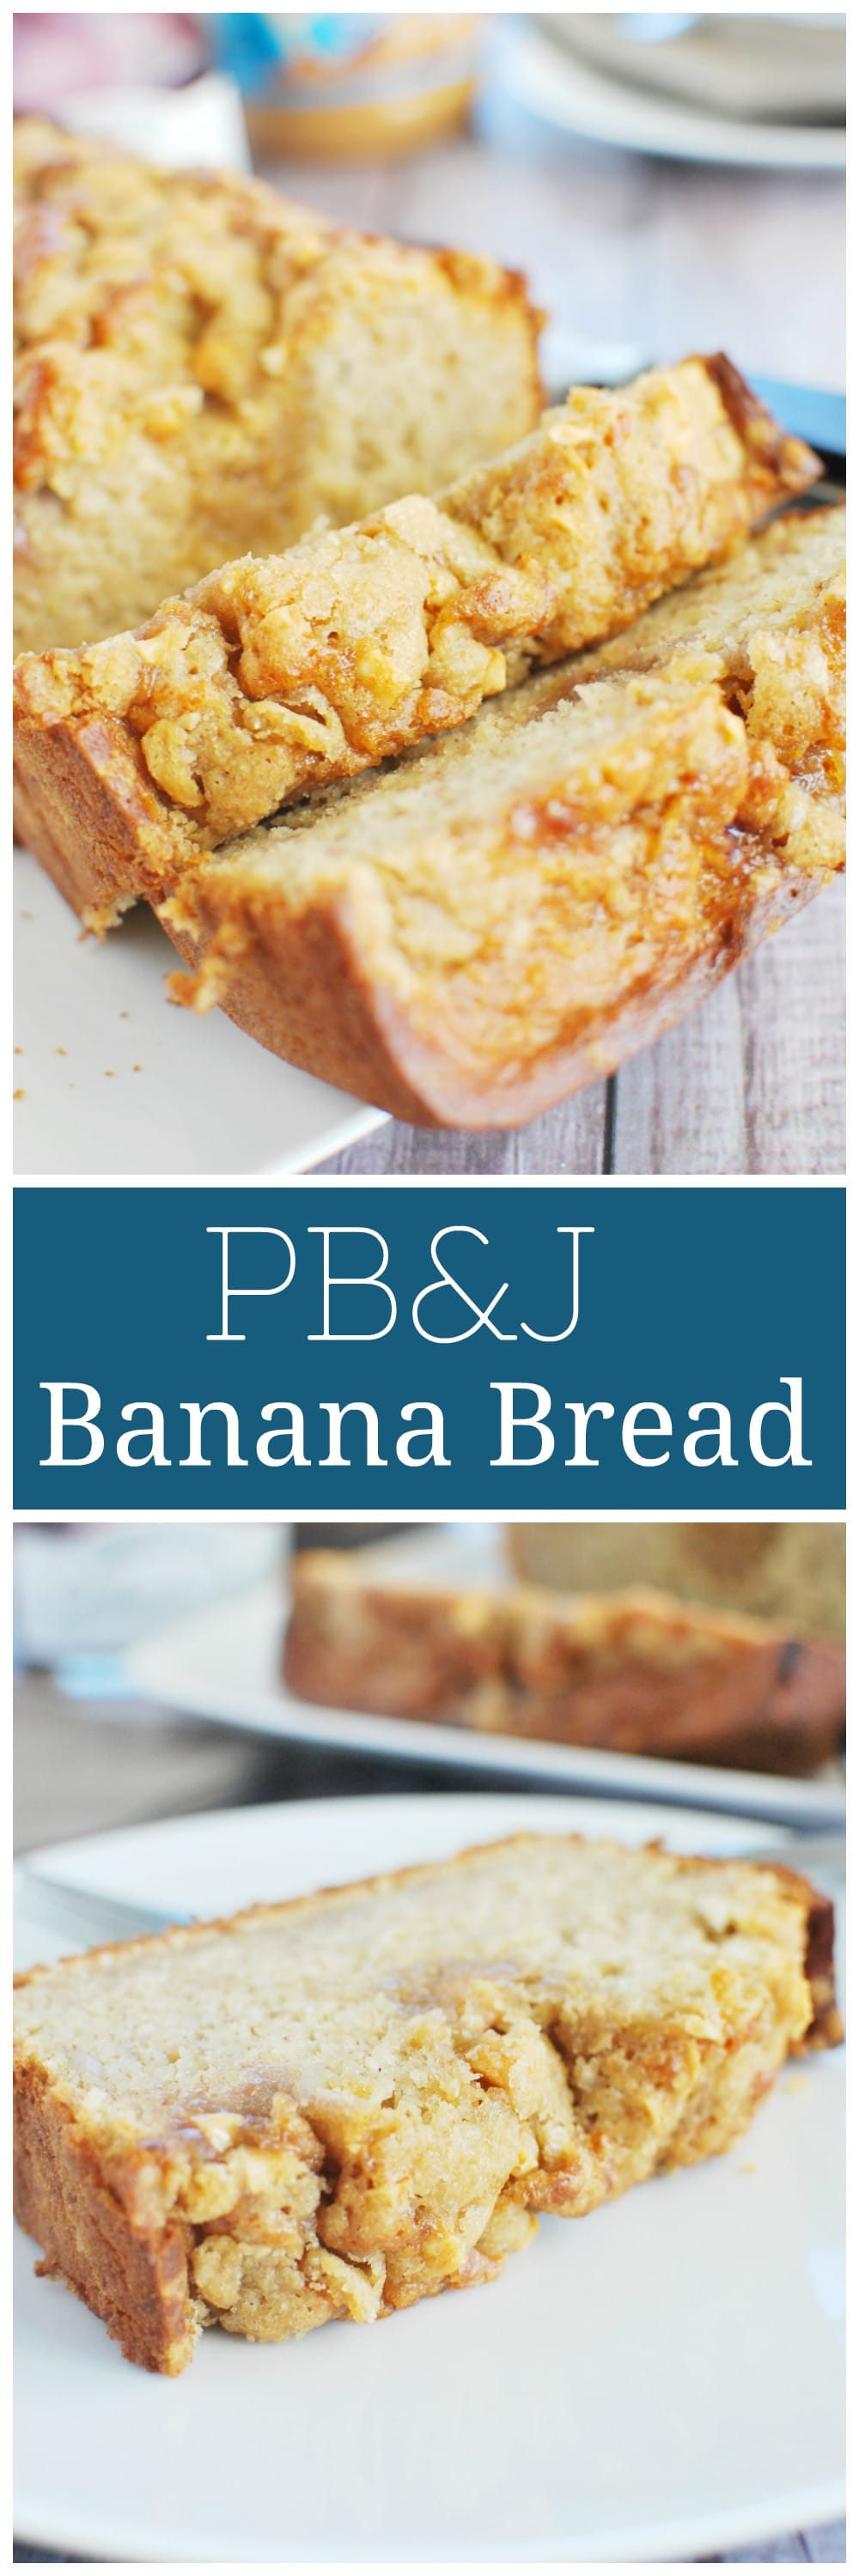 PB&J Banana Bread  - peanut butter banana bread with a drizzle of jam and topped with a streusel topping and chopped peanuts. Everything you love about pb&j in banana bread!